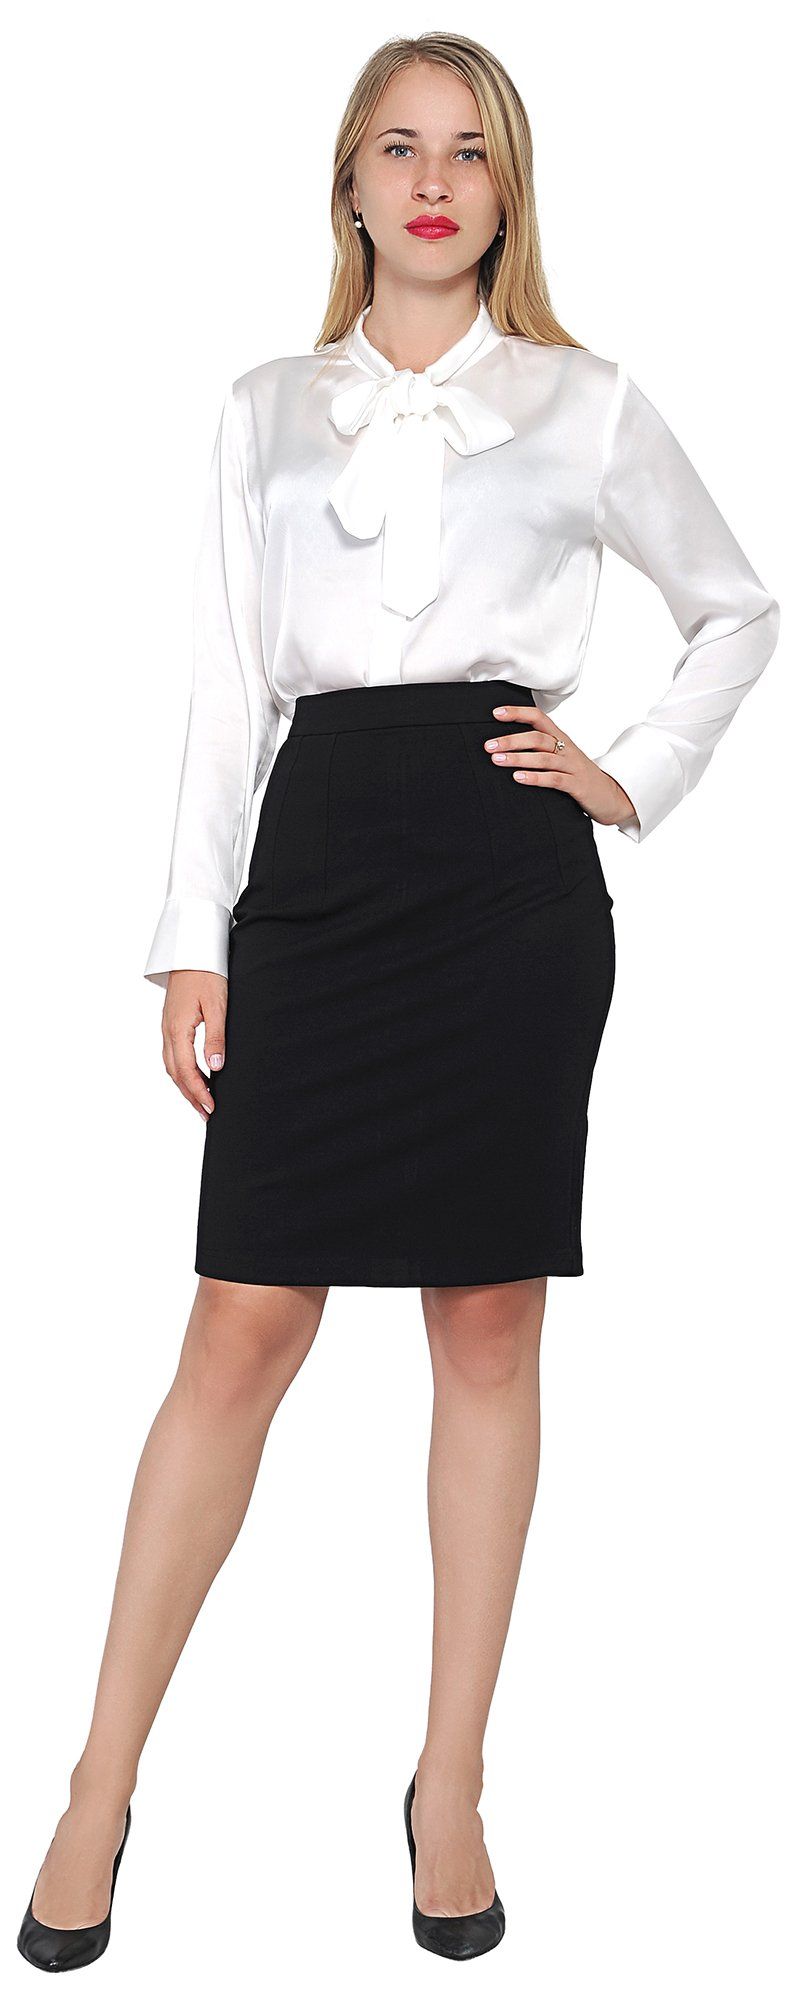 Marycrafts Women's Work Office Business Pencil Skirt XXL Black